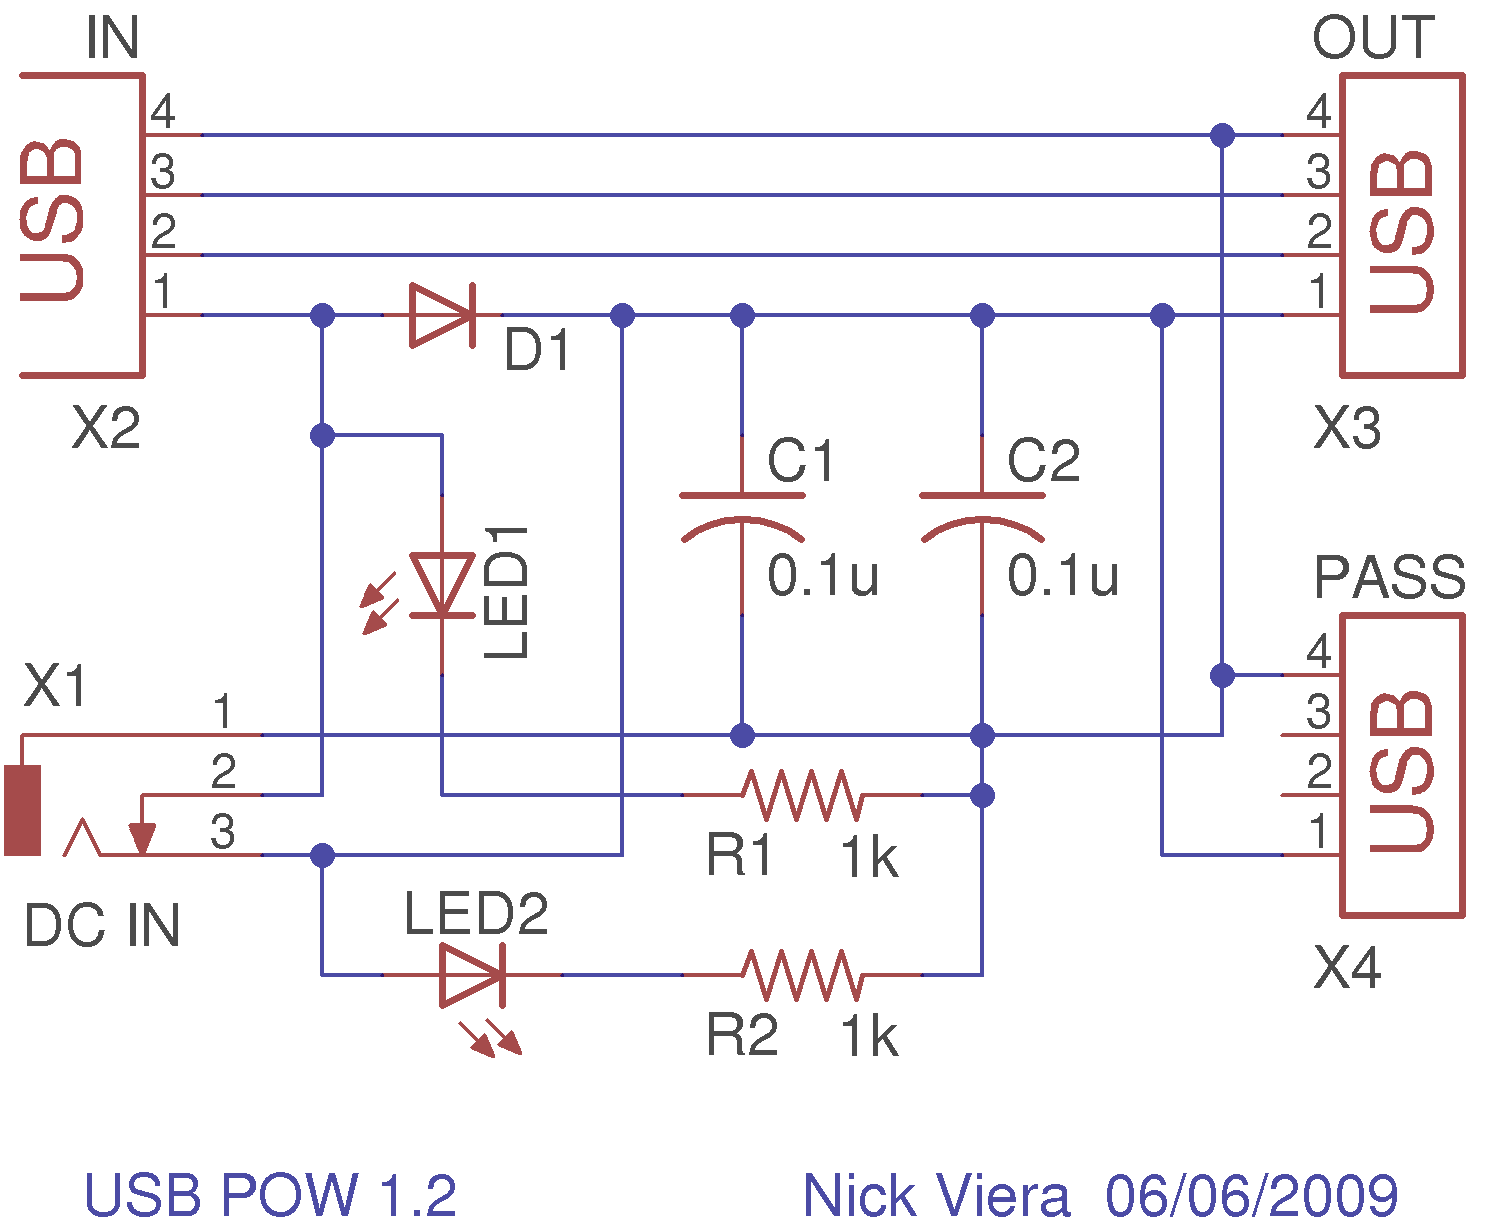 multi usb port circuit diagram diagram usb circuit page 3 computer circuits next gr